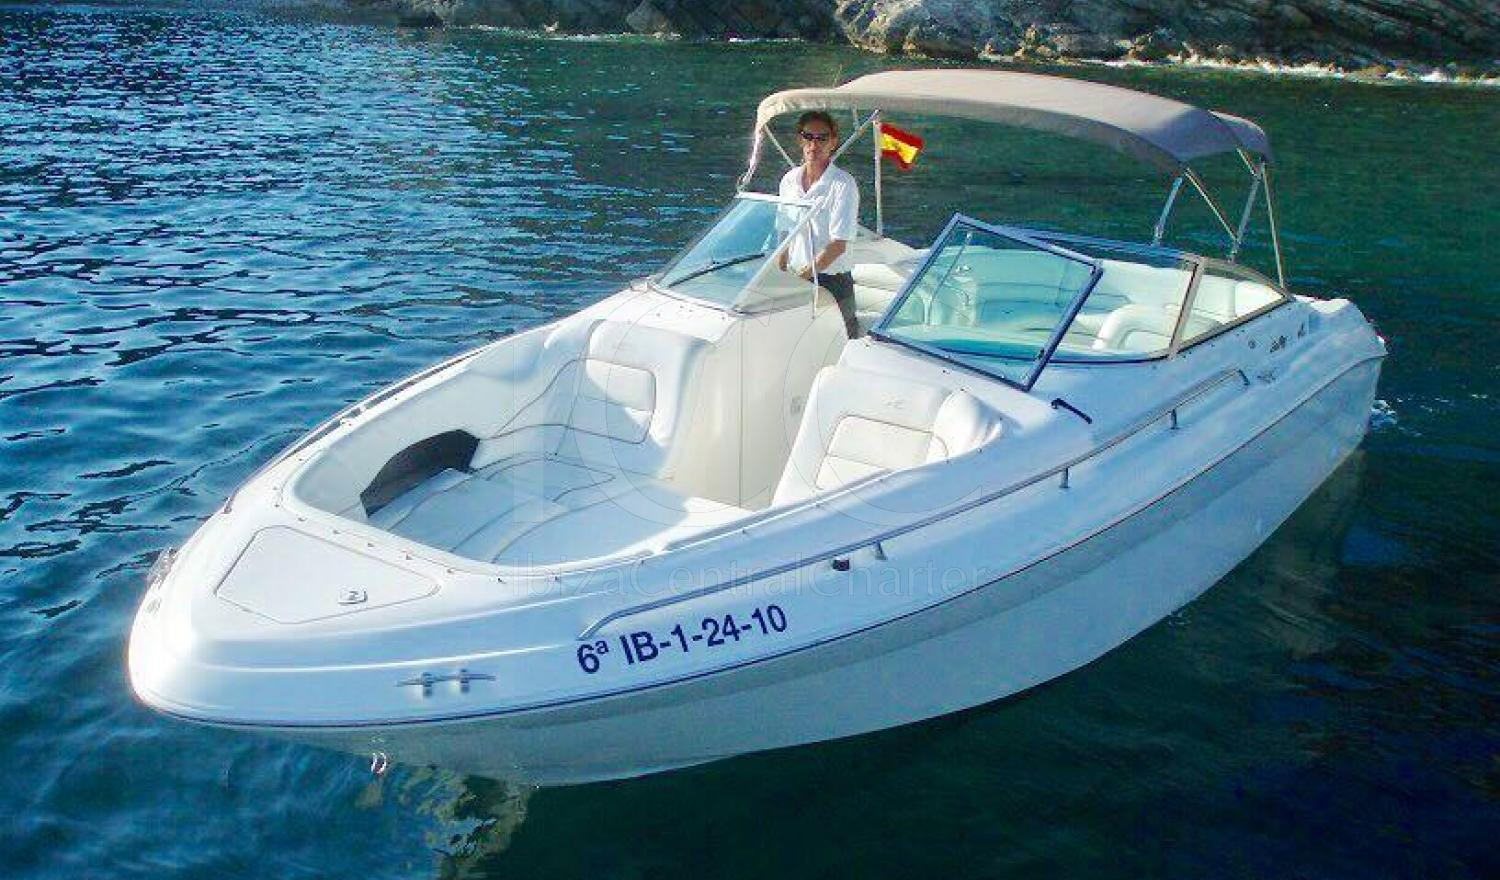 Rent this Sea Ray 28 of 9 meters ideal for up to 7 people